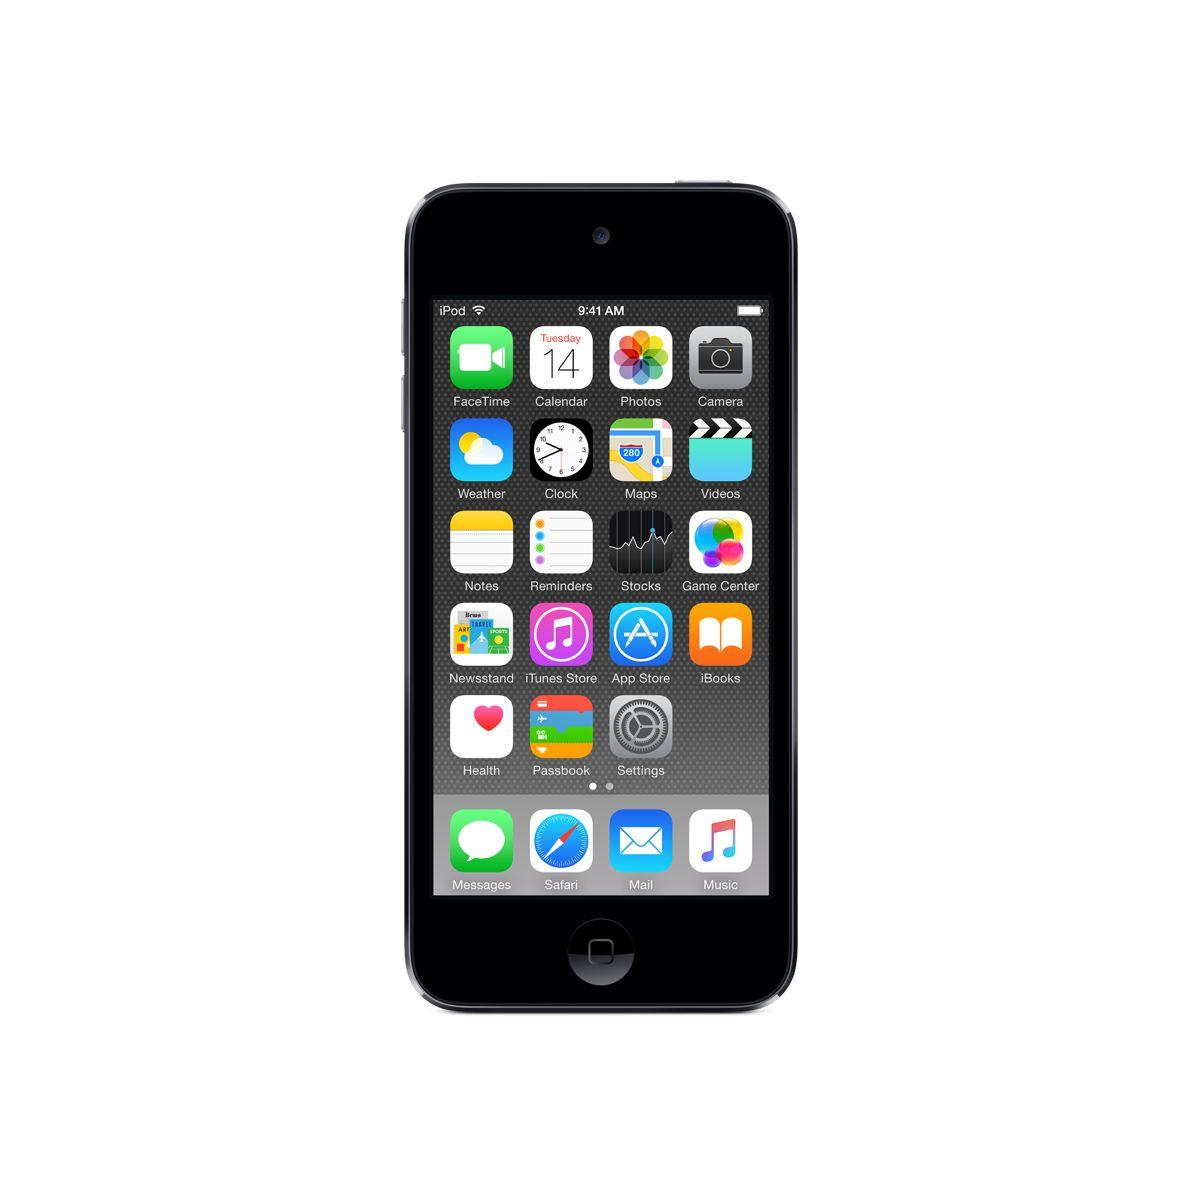 Bal.mp4 apple ipod touch 128gb space gri - livraison offerte : code livdom (photo)